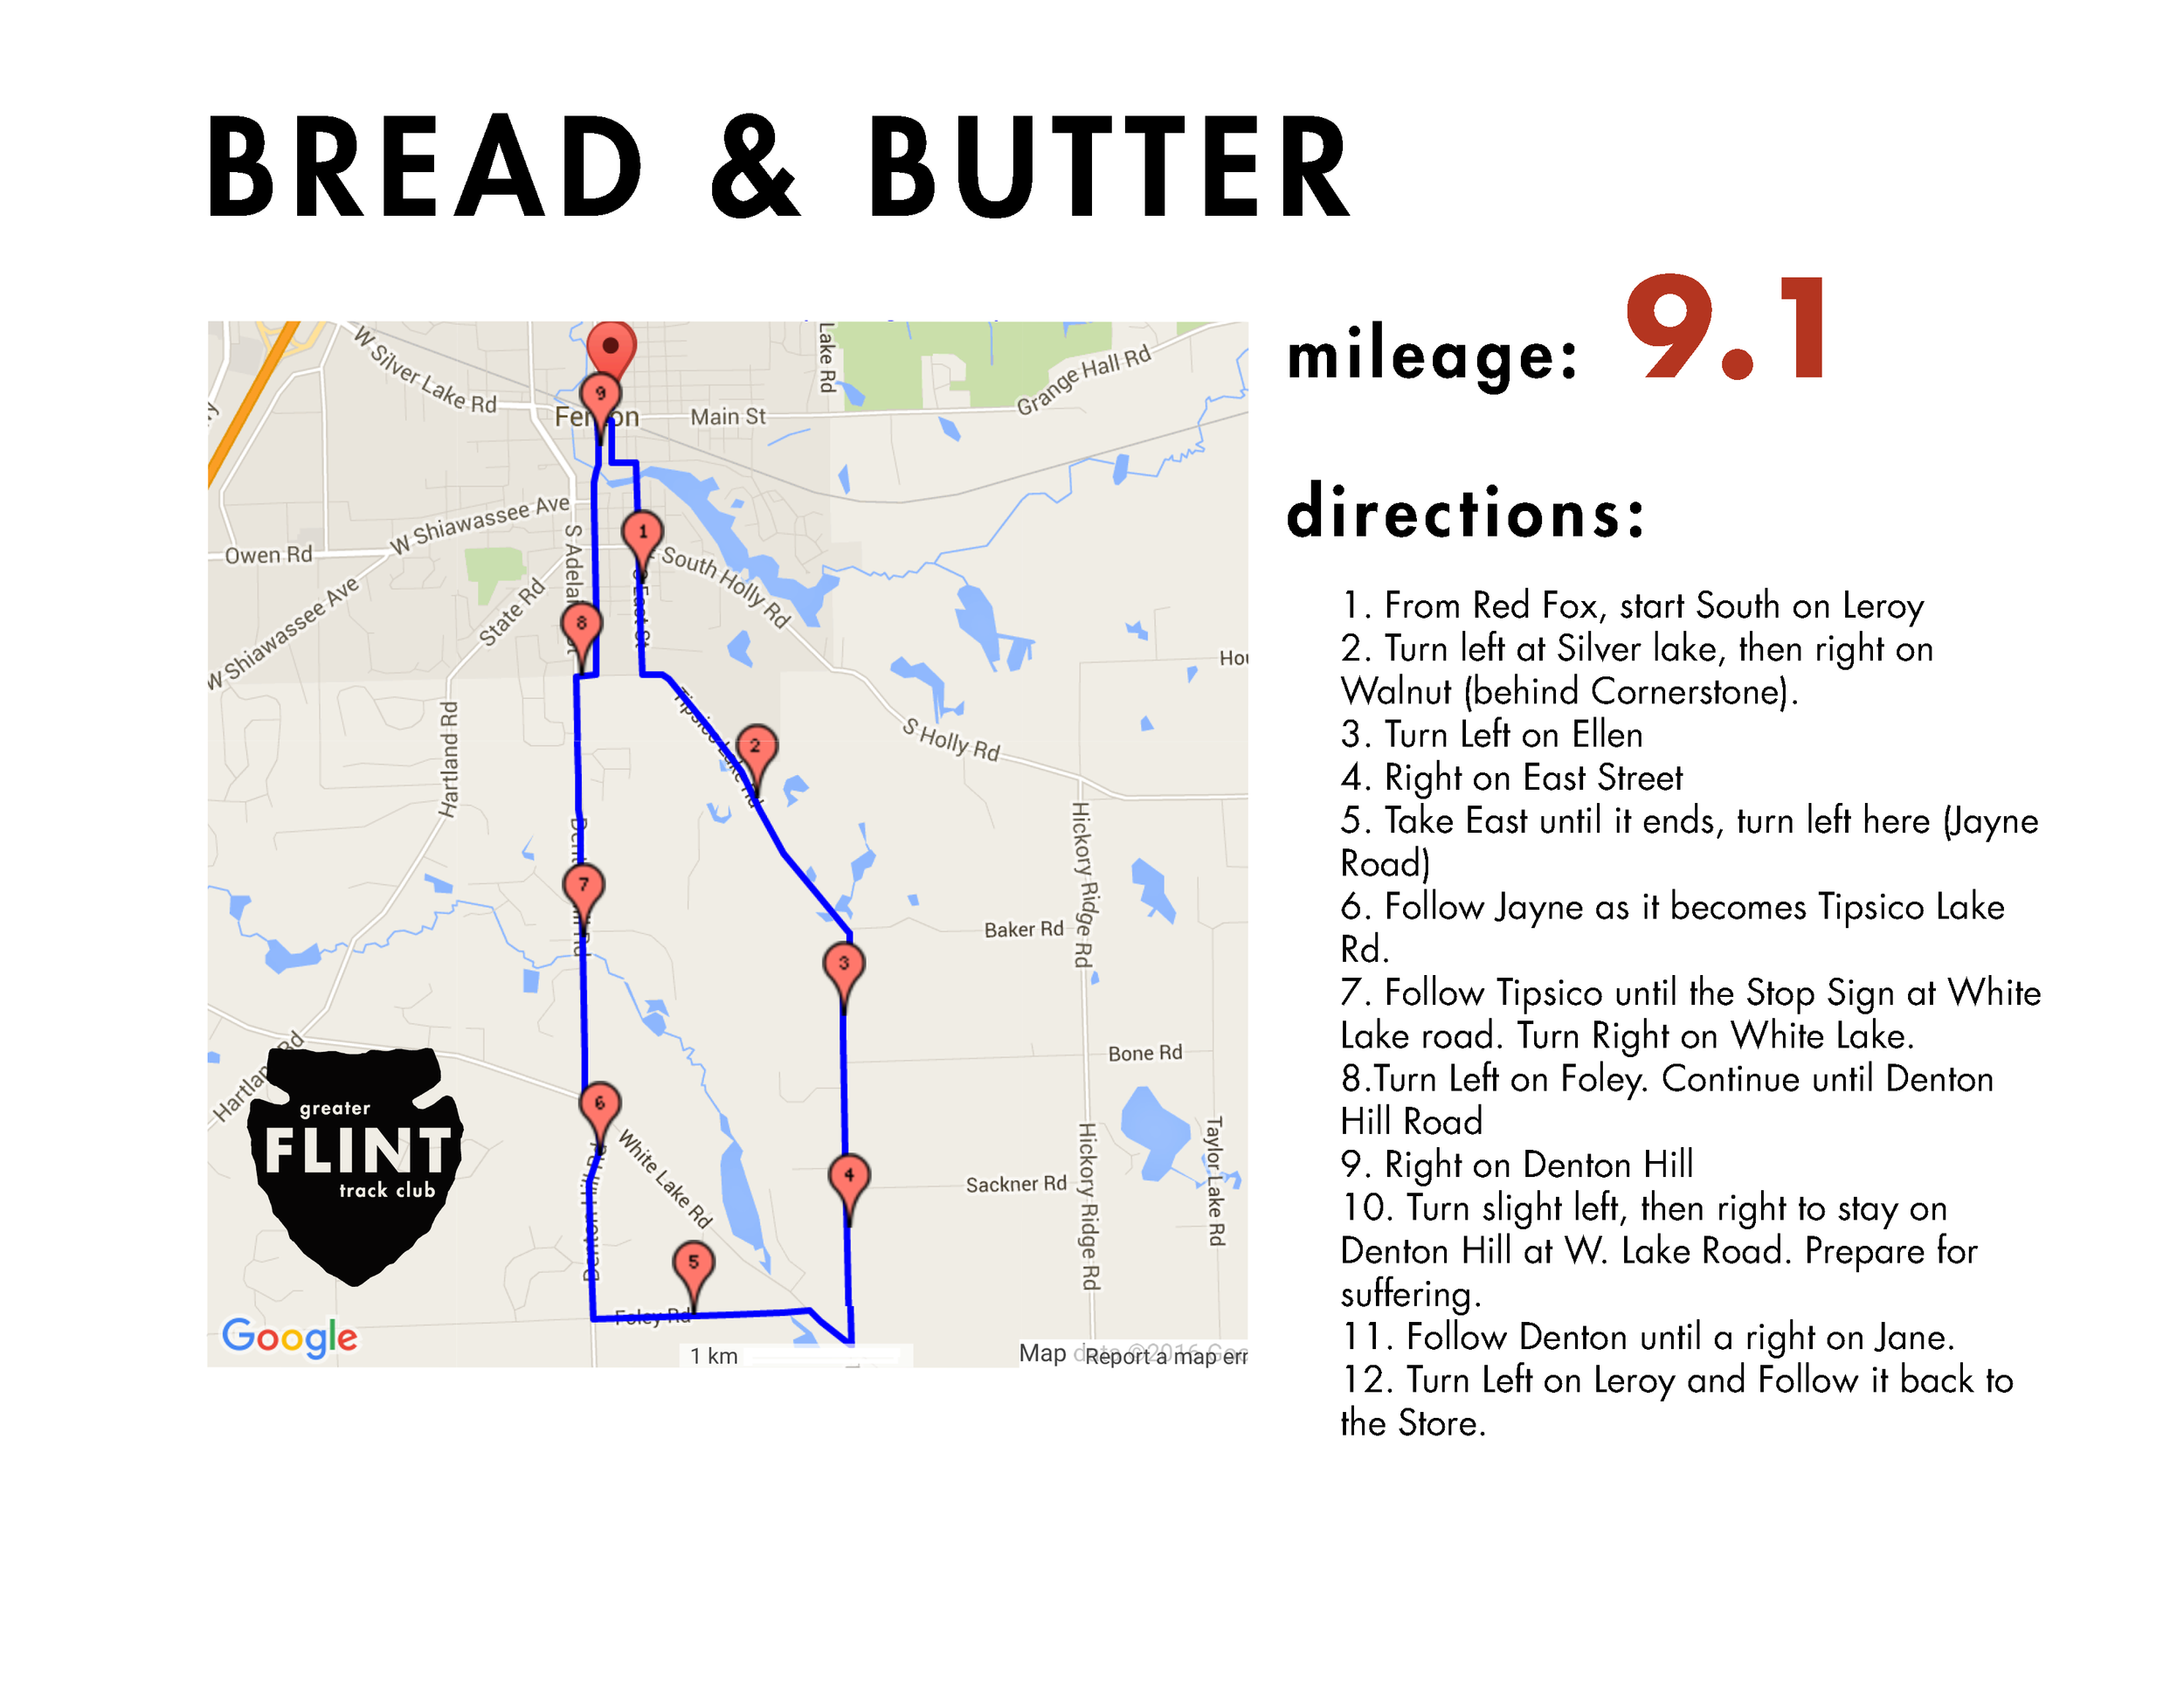 """Just as the name implies - this is a bread and butter route in any half-marathon, marathon, or high mileage program. professional runner noah droddy has been quoted as saying this was a """"nice"""" route when he was given a tour in advance of crim 2017. it has some rolling hills that are manageable, but build steel in the legs."""